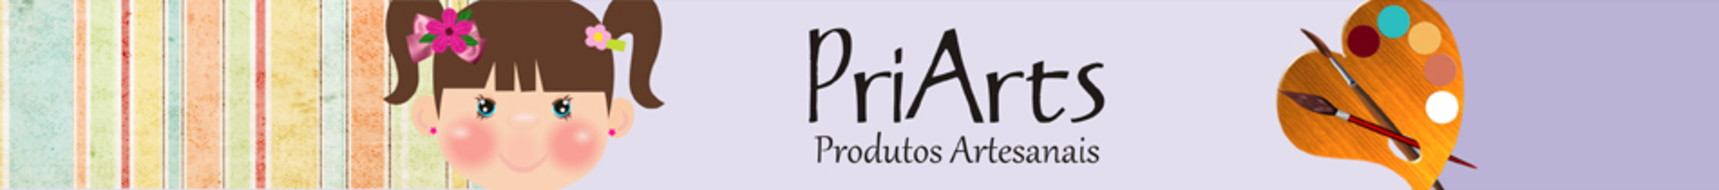 PriArts